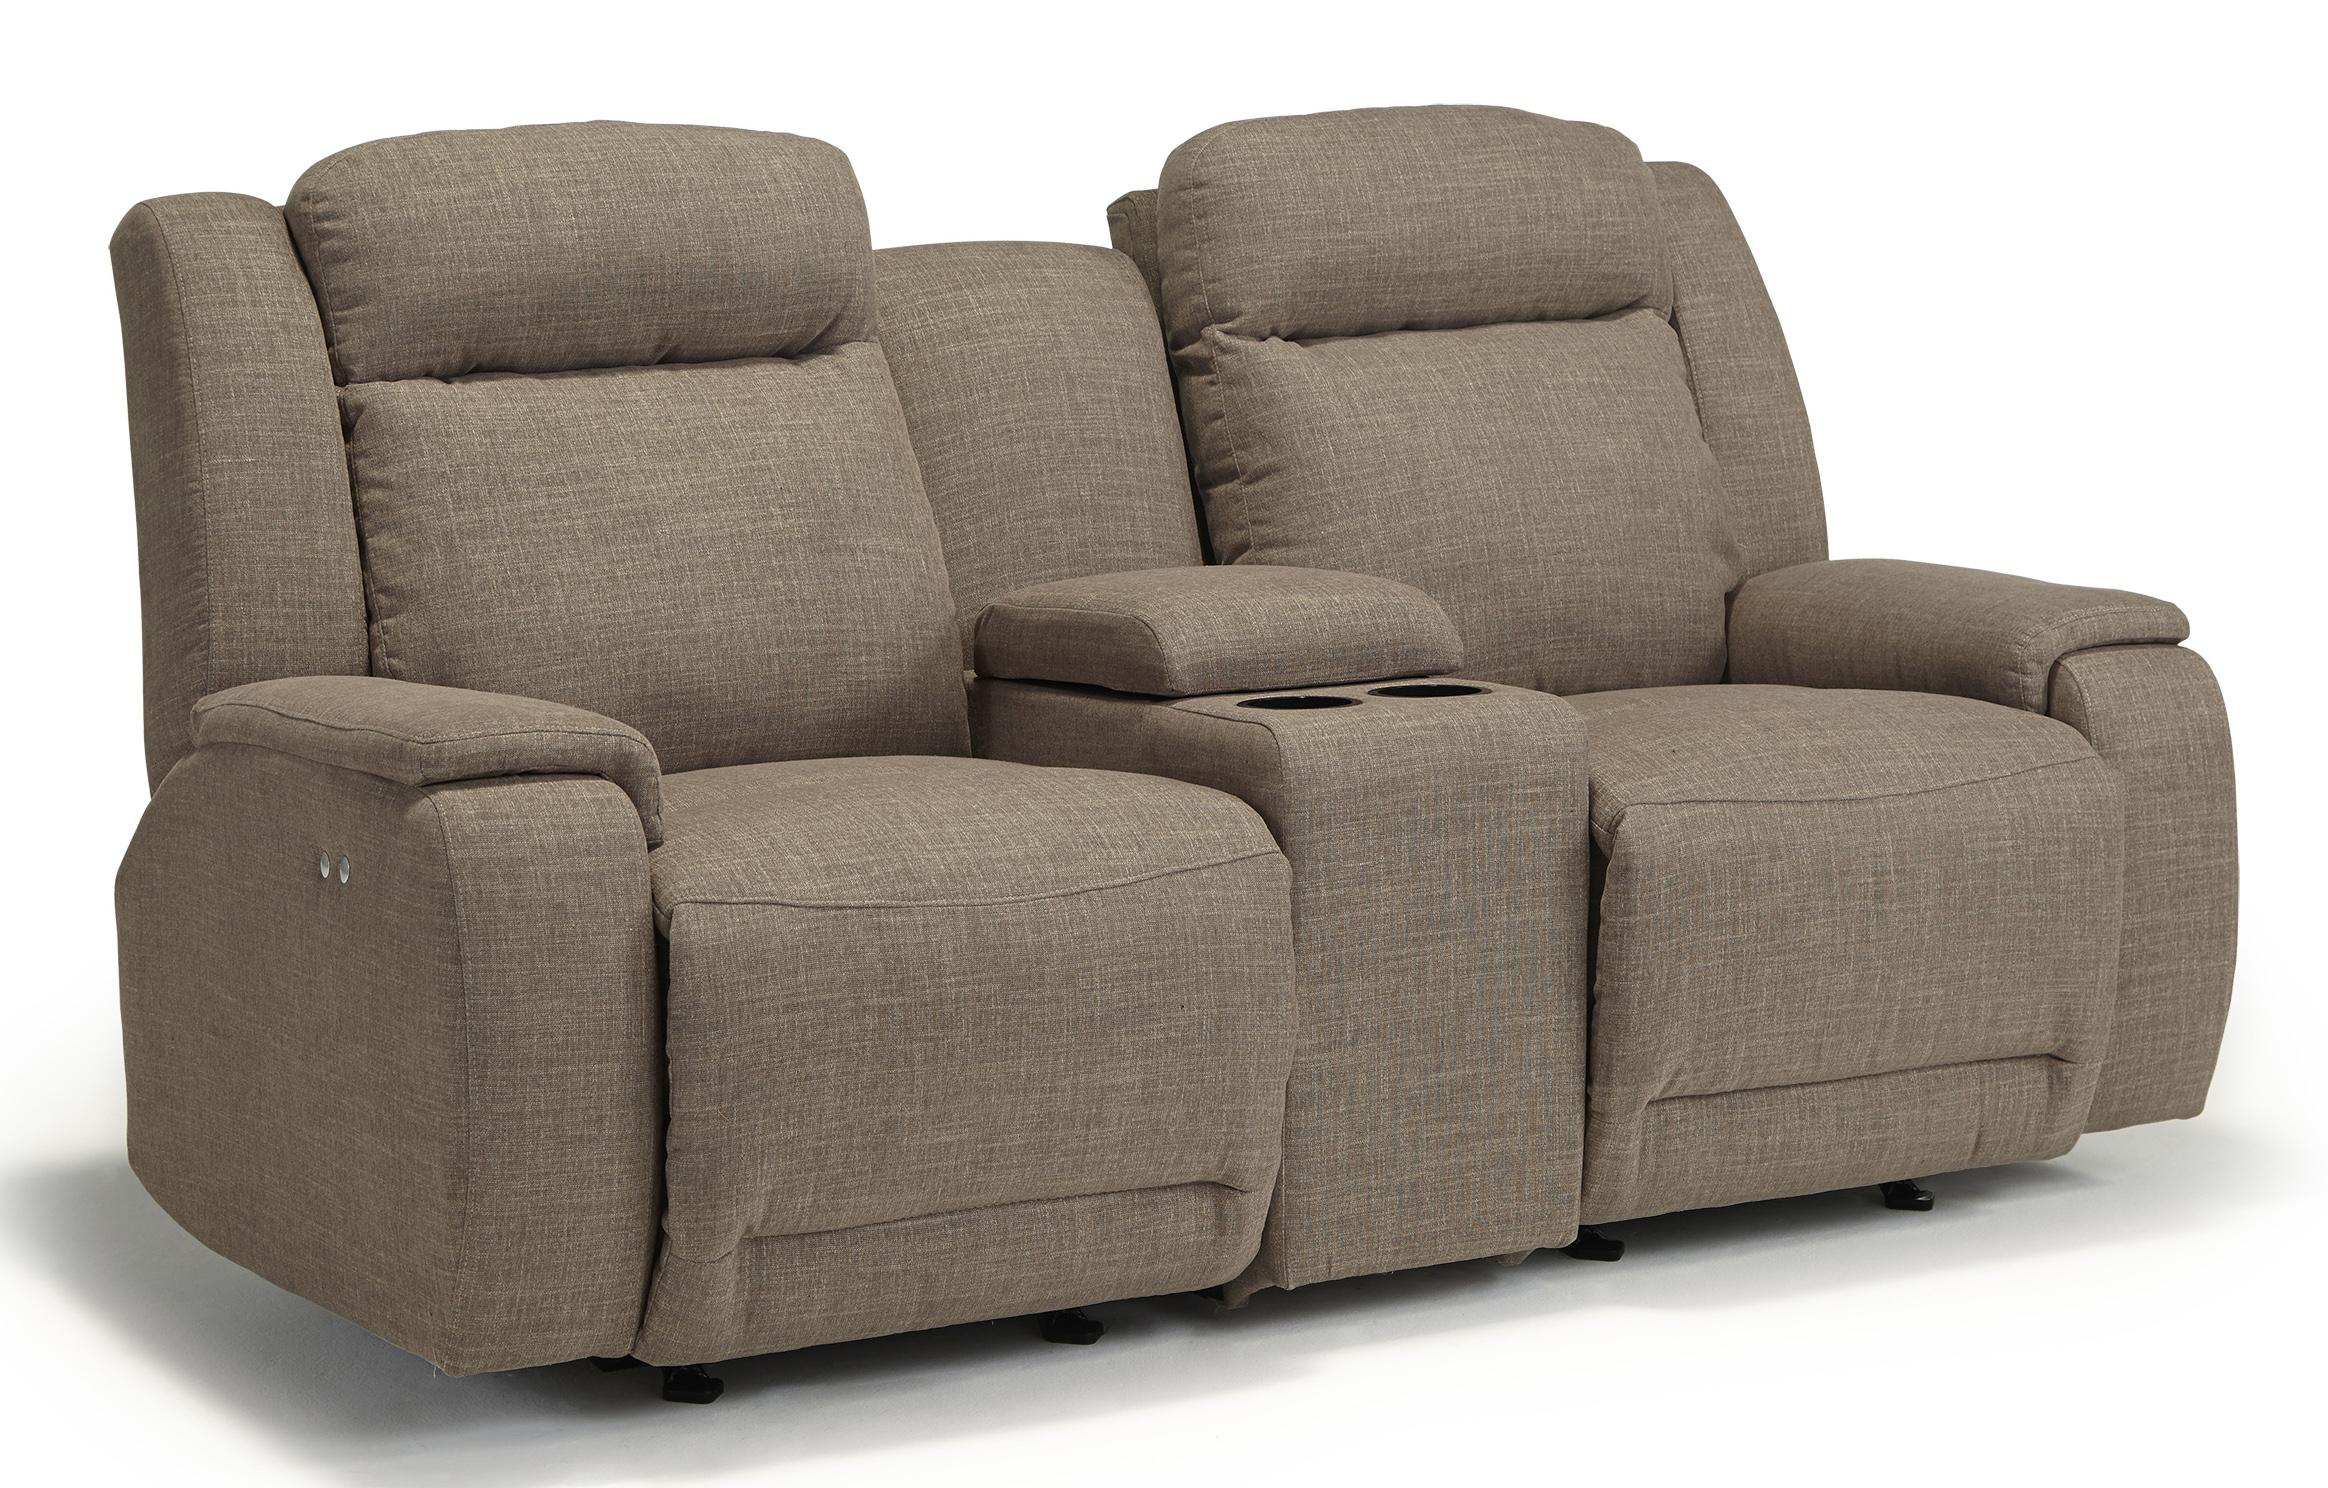 Hardisty Power Rocking Reclining Loveseat With Cupholder And Storage Console By Best Home